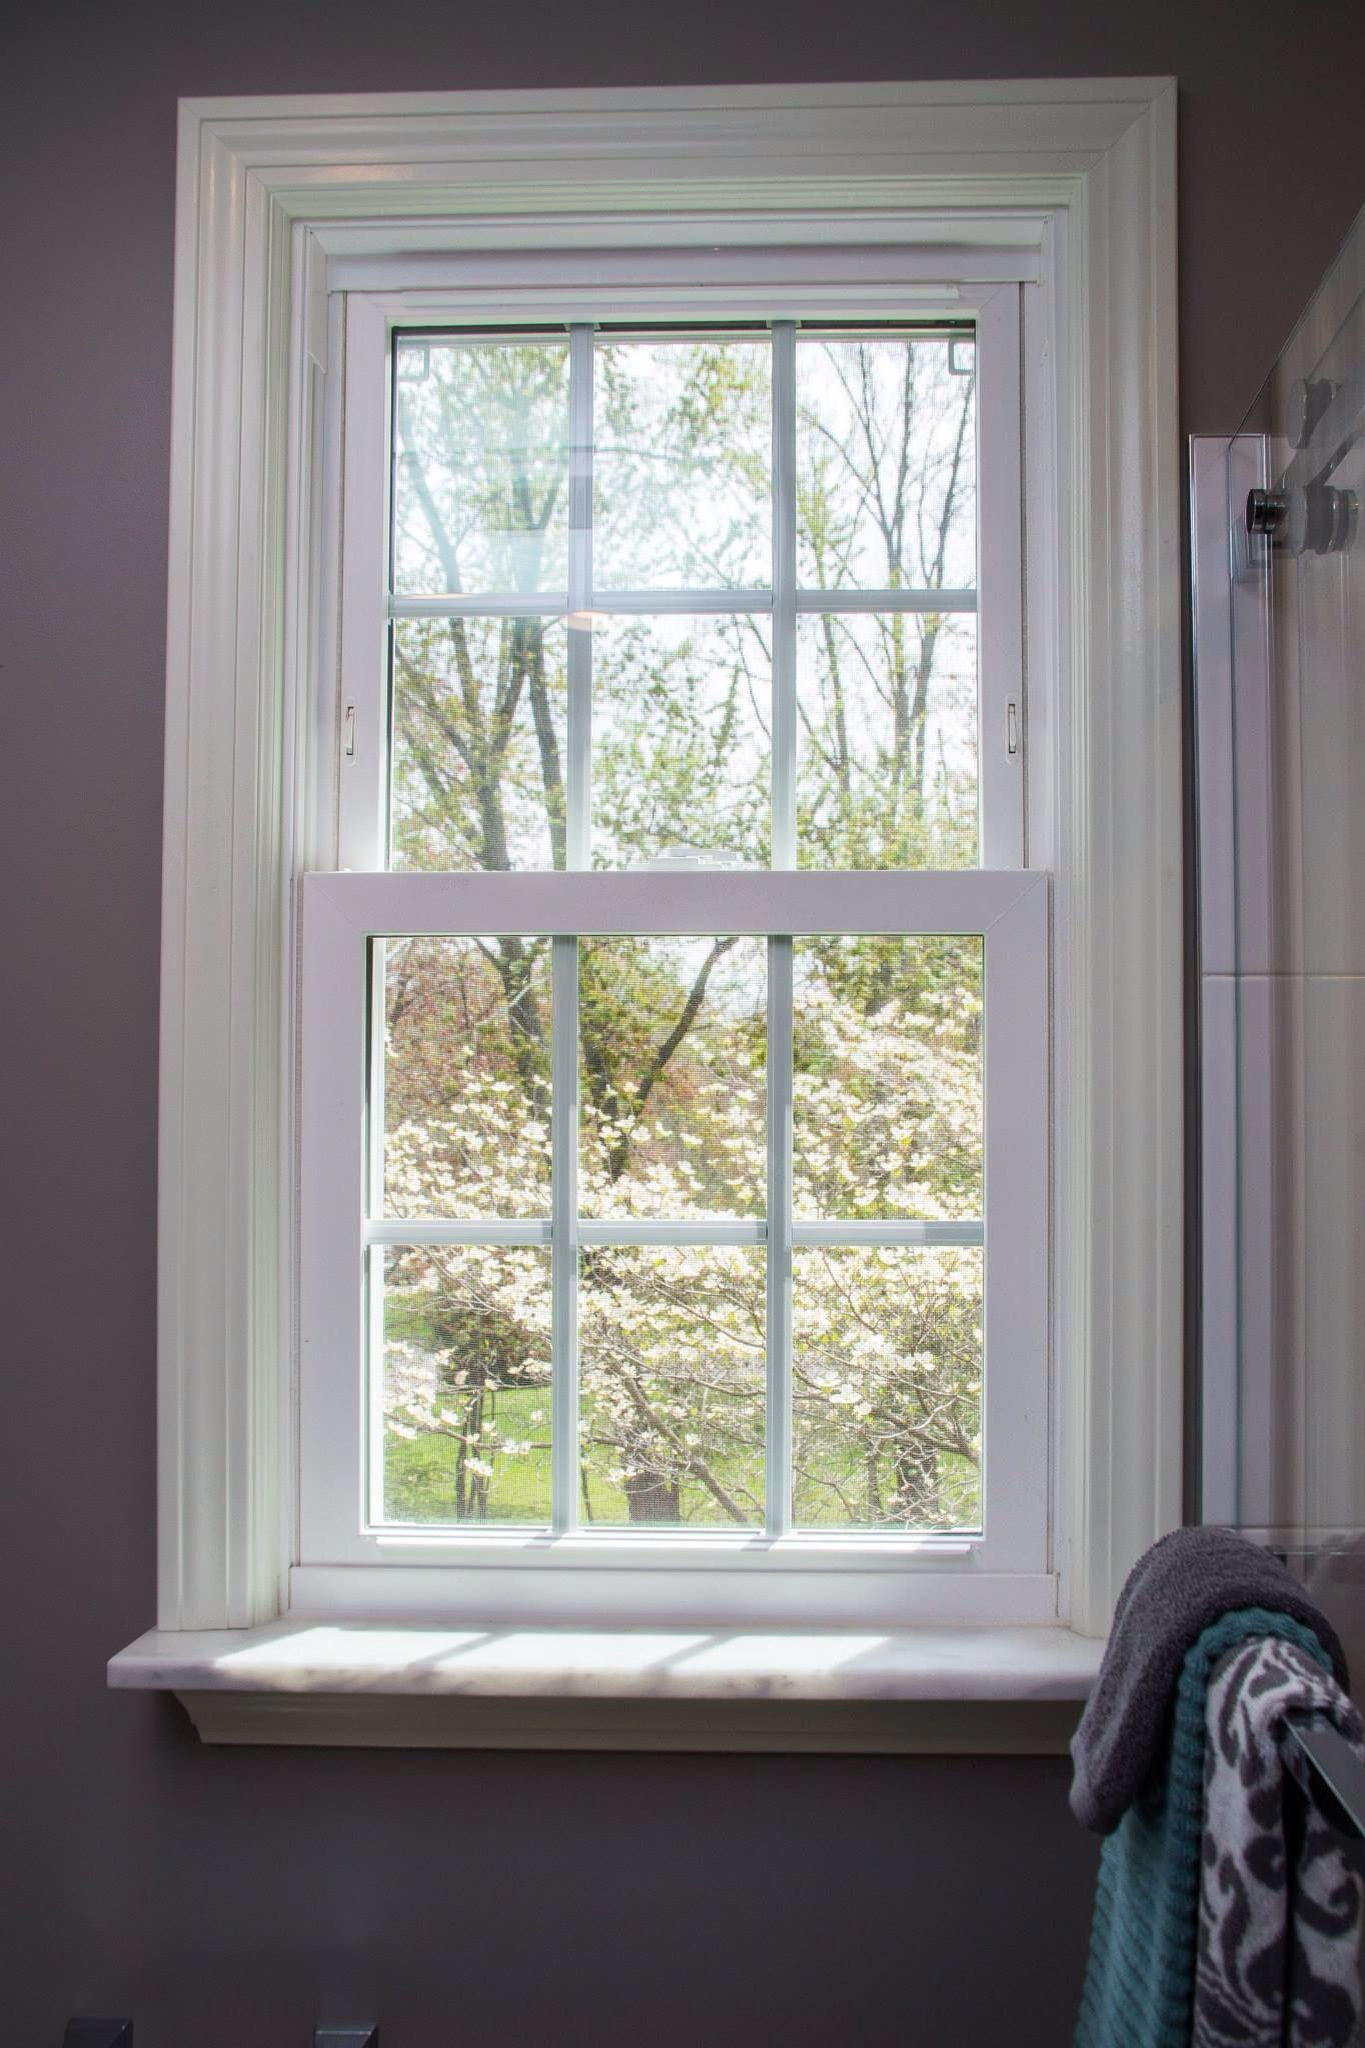 Kitchen window without sill  marble window sill  crown moulding  pinterest  marble window sill